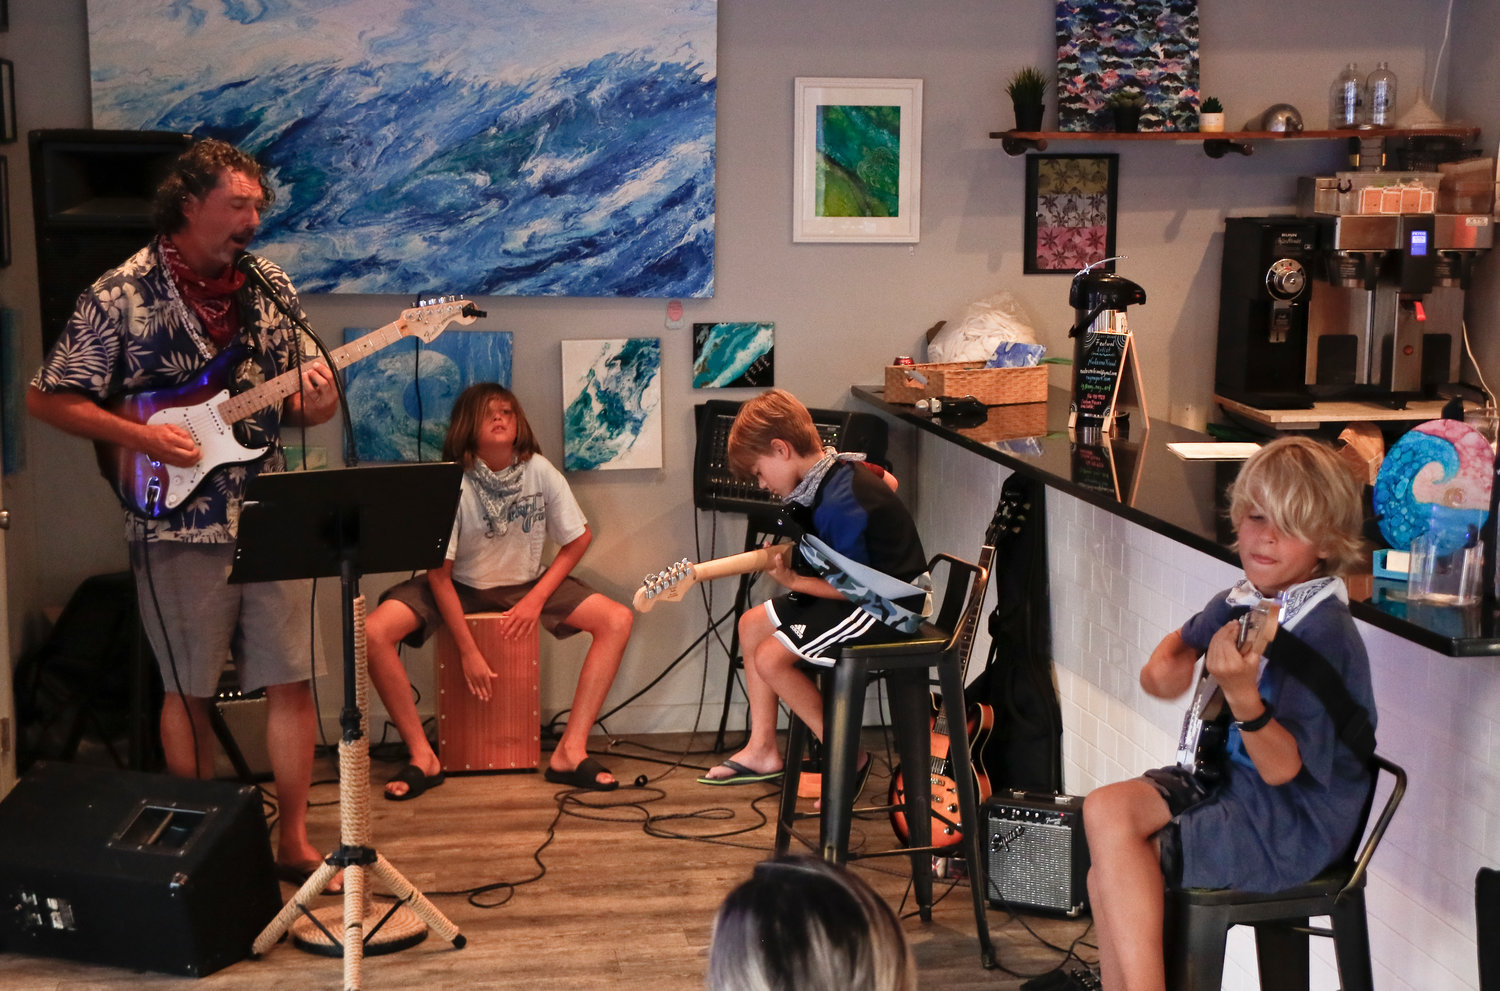 Studio owner Ben Noir played a variety of songs with, from left, Lars Sorensen, 13, on the Cajon, Paul Vivot, 8, on guitar and Finn Long, 11 also on guitar.